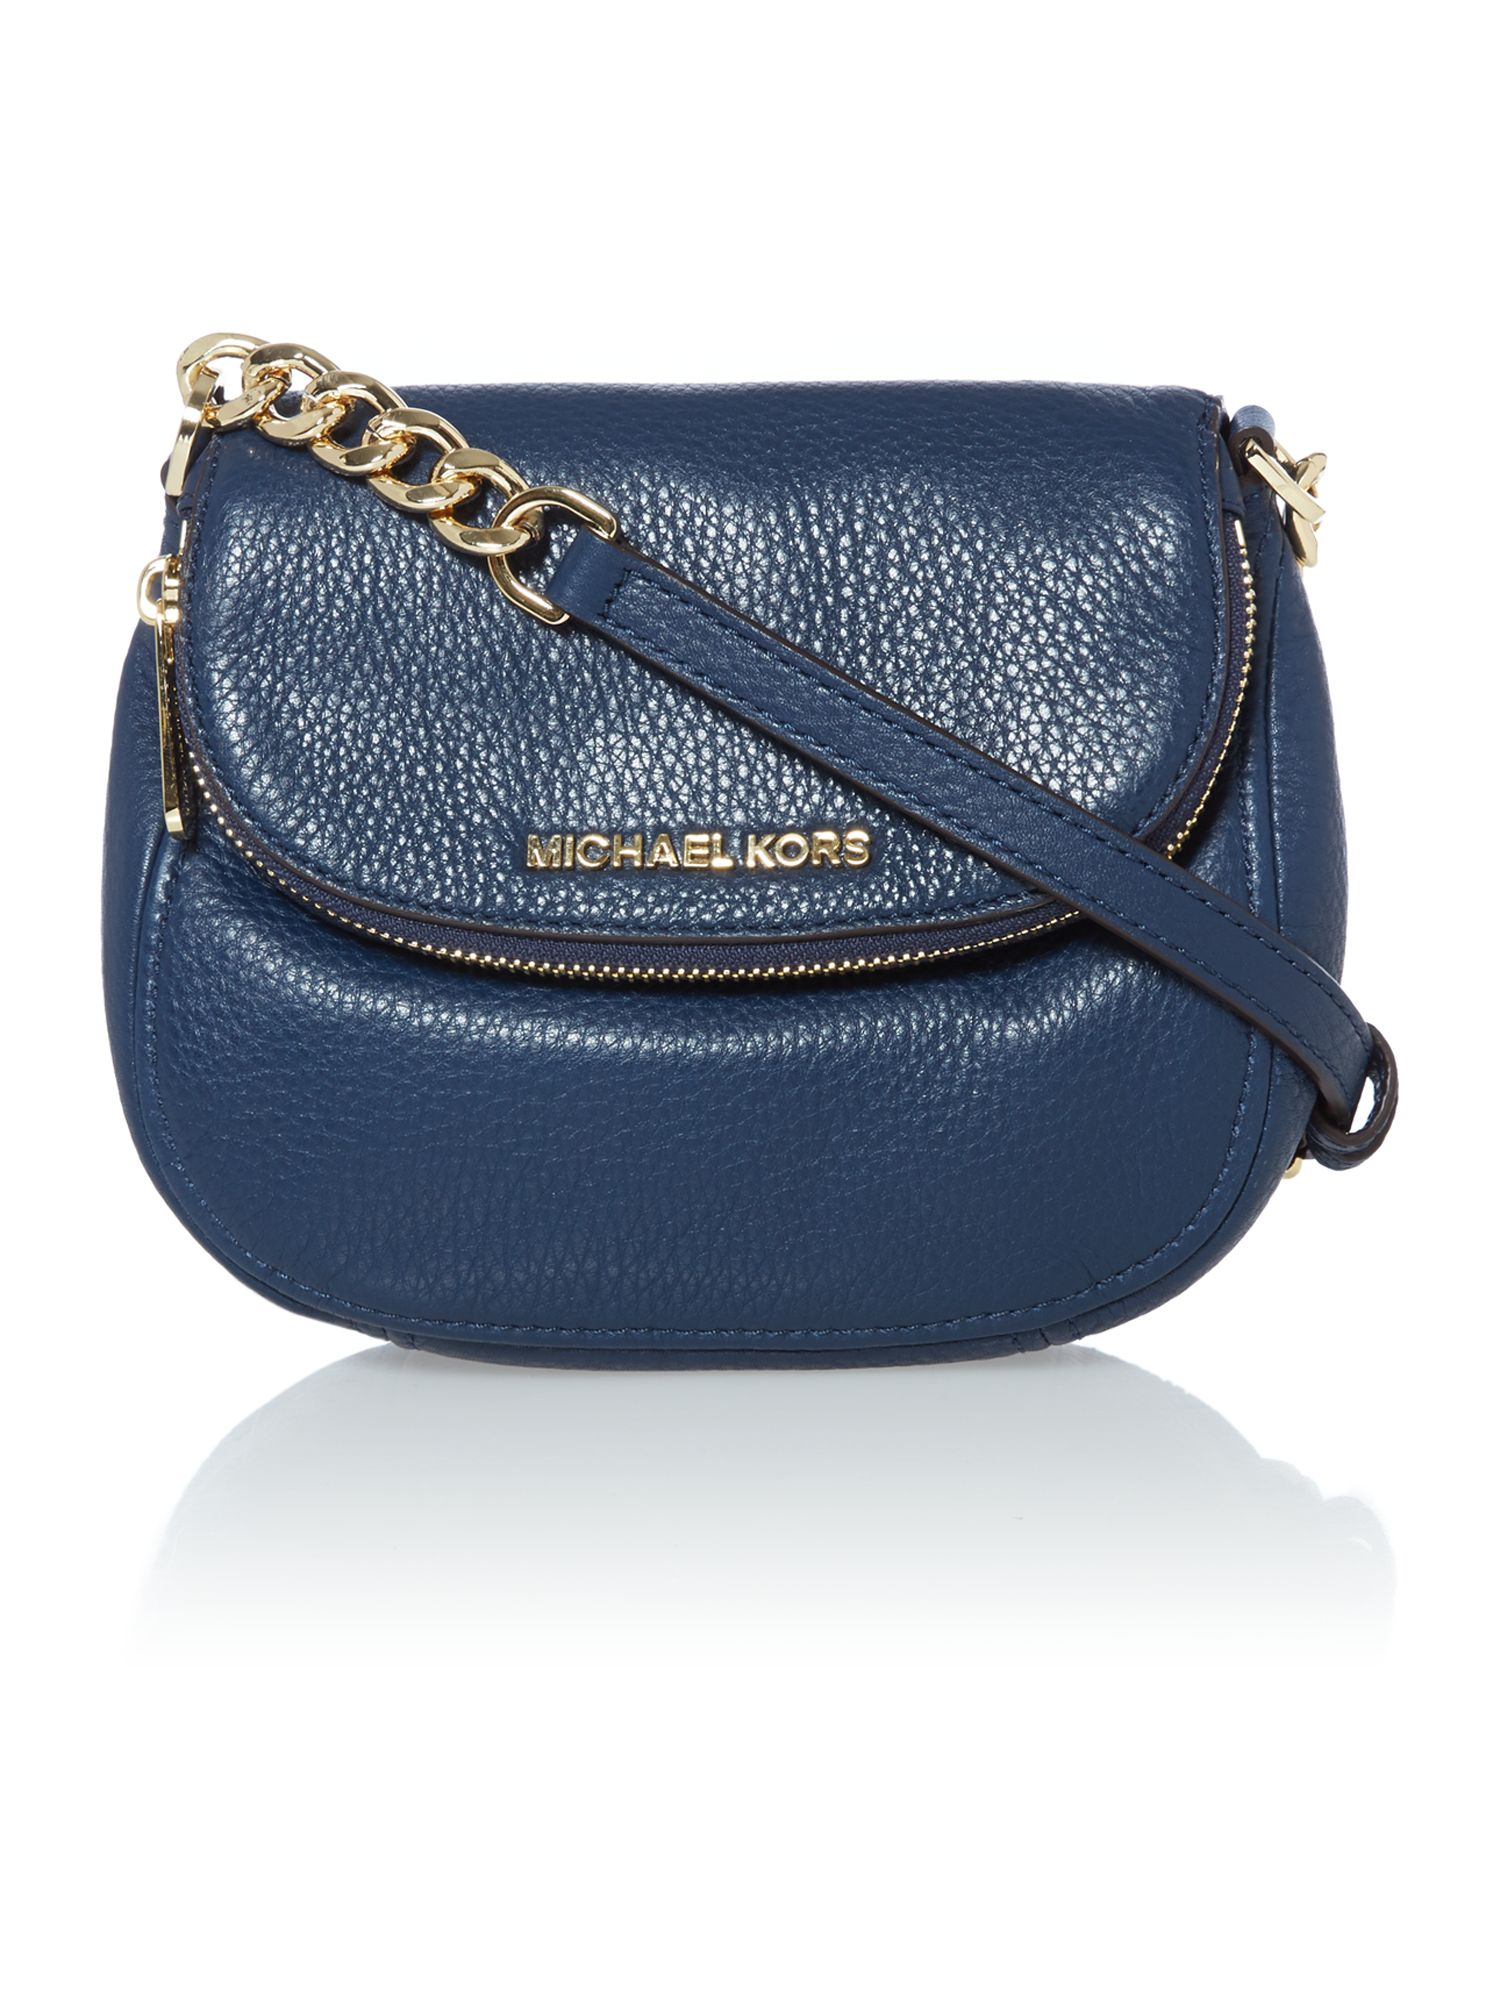 Bedford navy flap over cross body bag